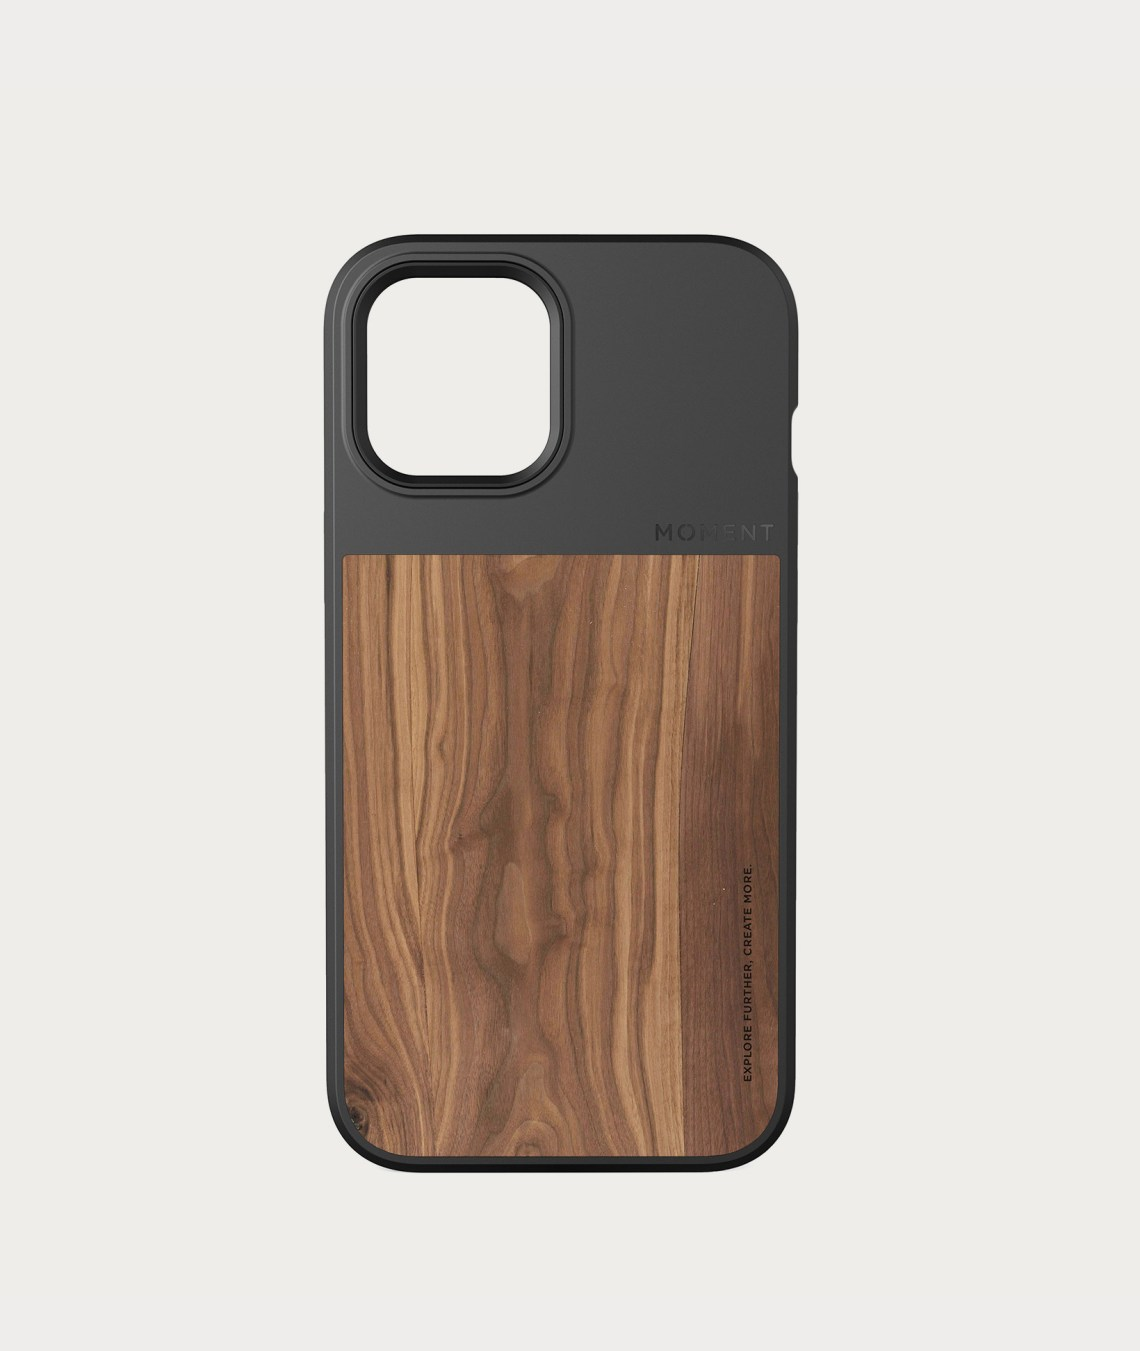 311 123 Moment iPhone12ProMax Case walnut wood thumbnail